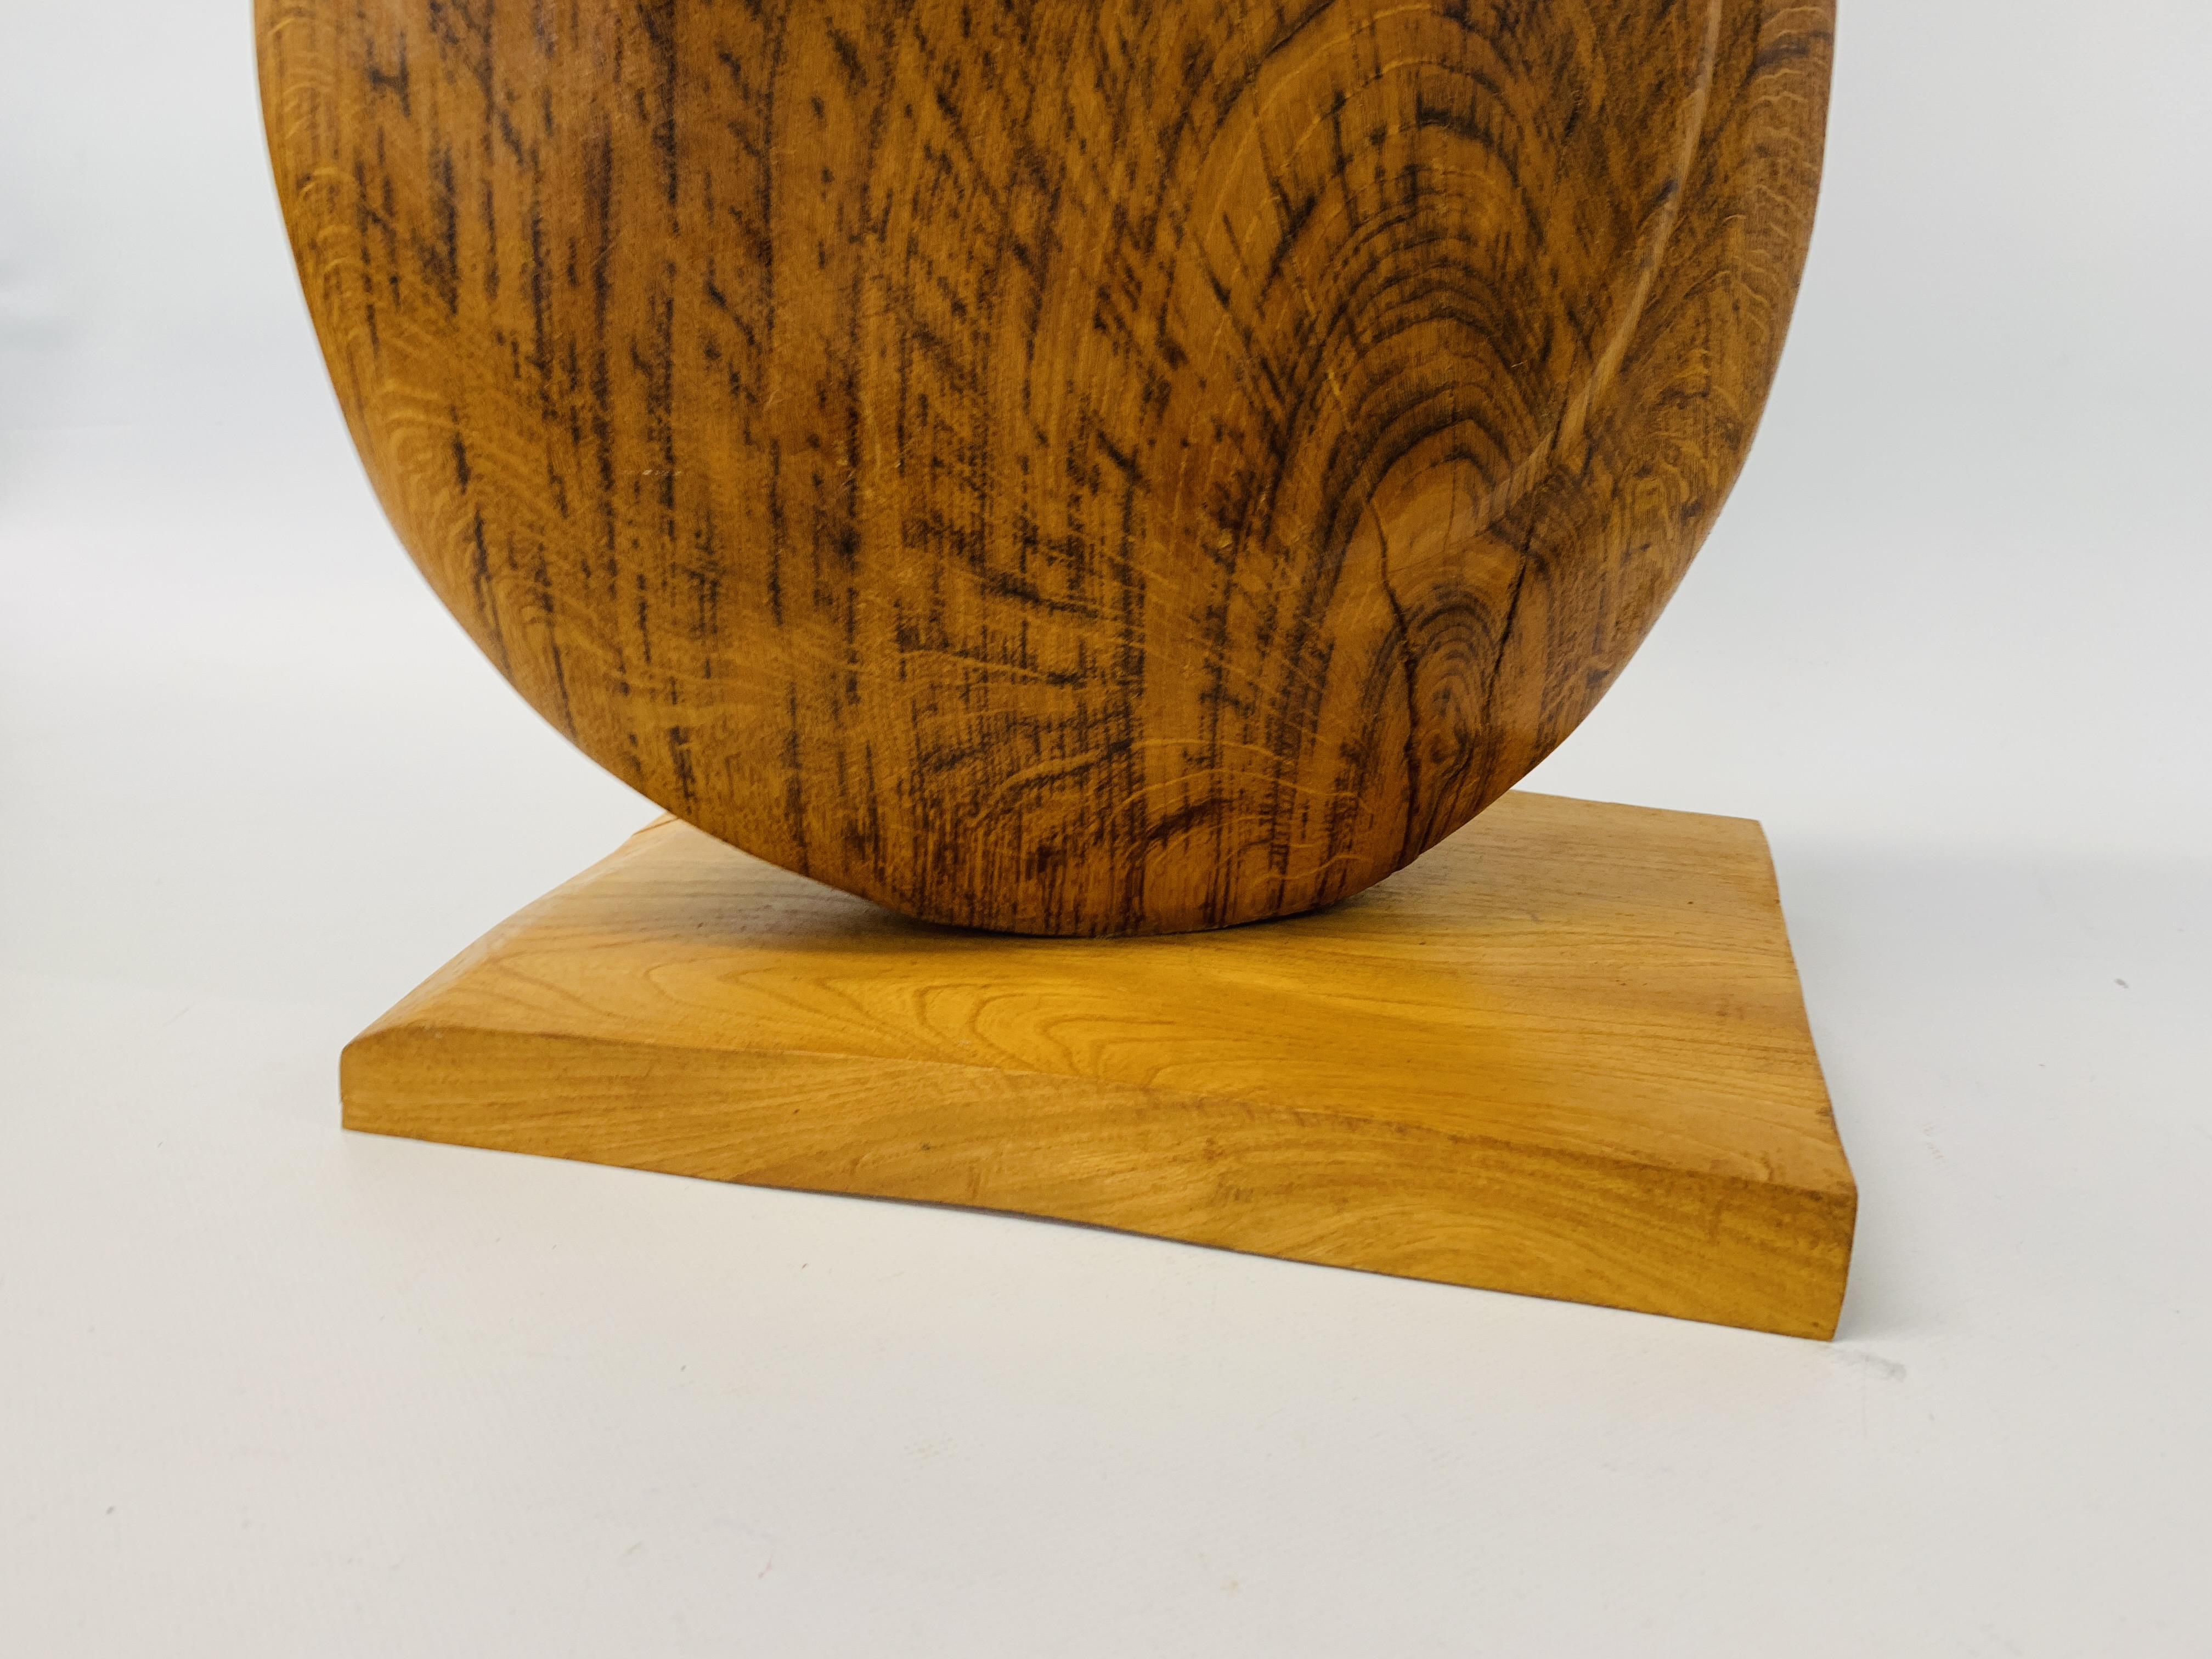 """AN OAK ABSTRACT SCULPTURE OF """"U"""" SHAPED FORM - HEIGHT 83 CM. - Image 3 of 8"""